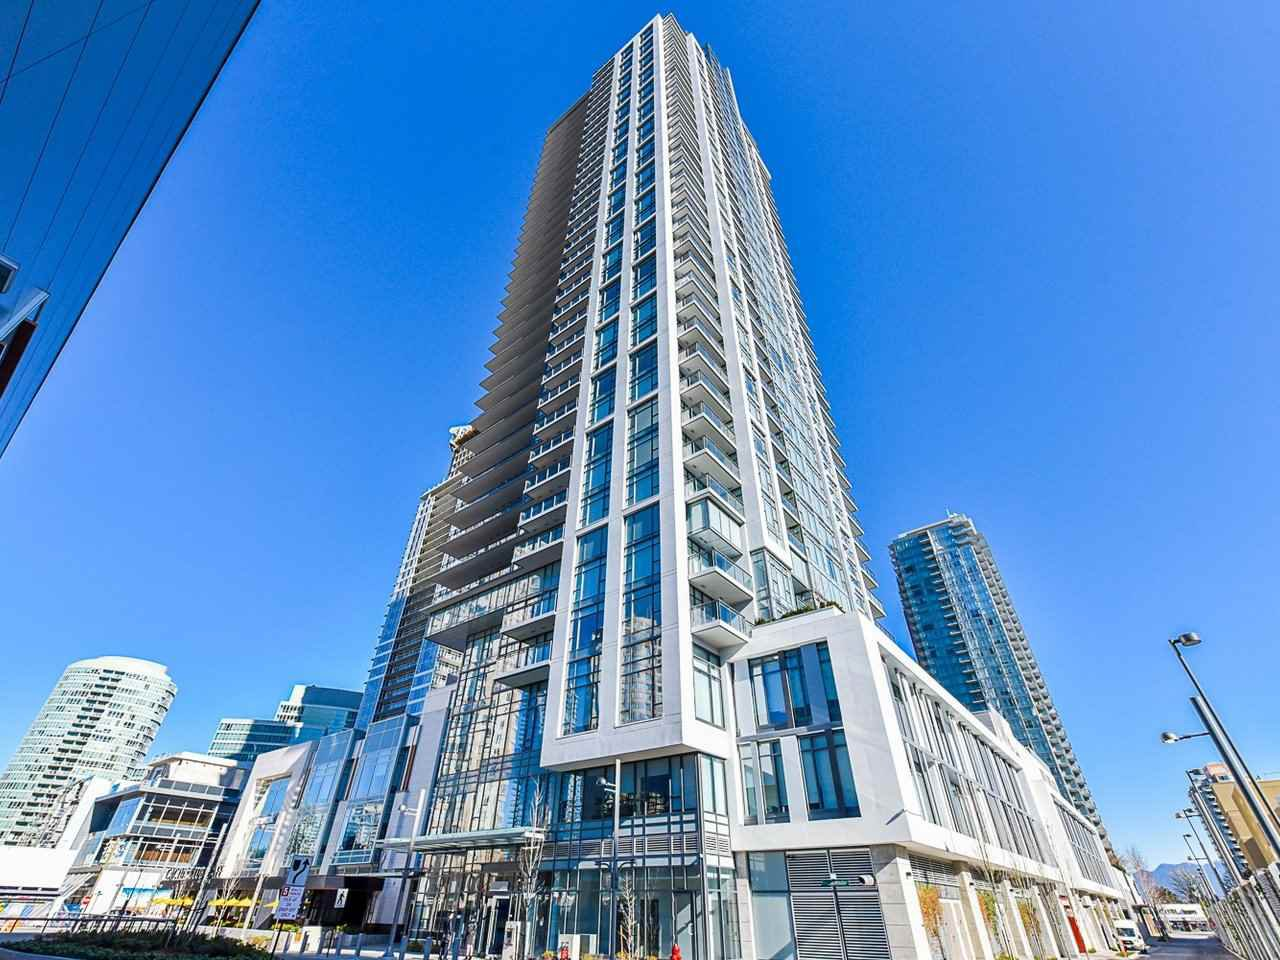 Main Photo: 2205 6098 STATION Street in Burnaby: Metrotown Condo for sale (Burnaby South)  : MLS®# R2446333